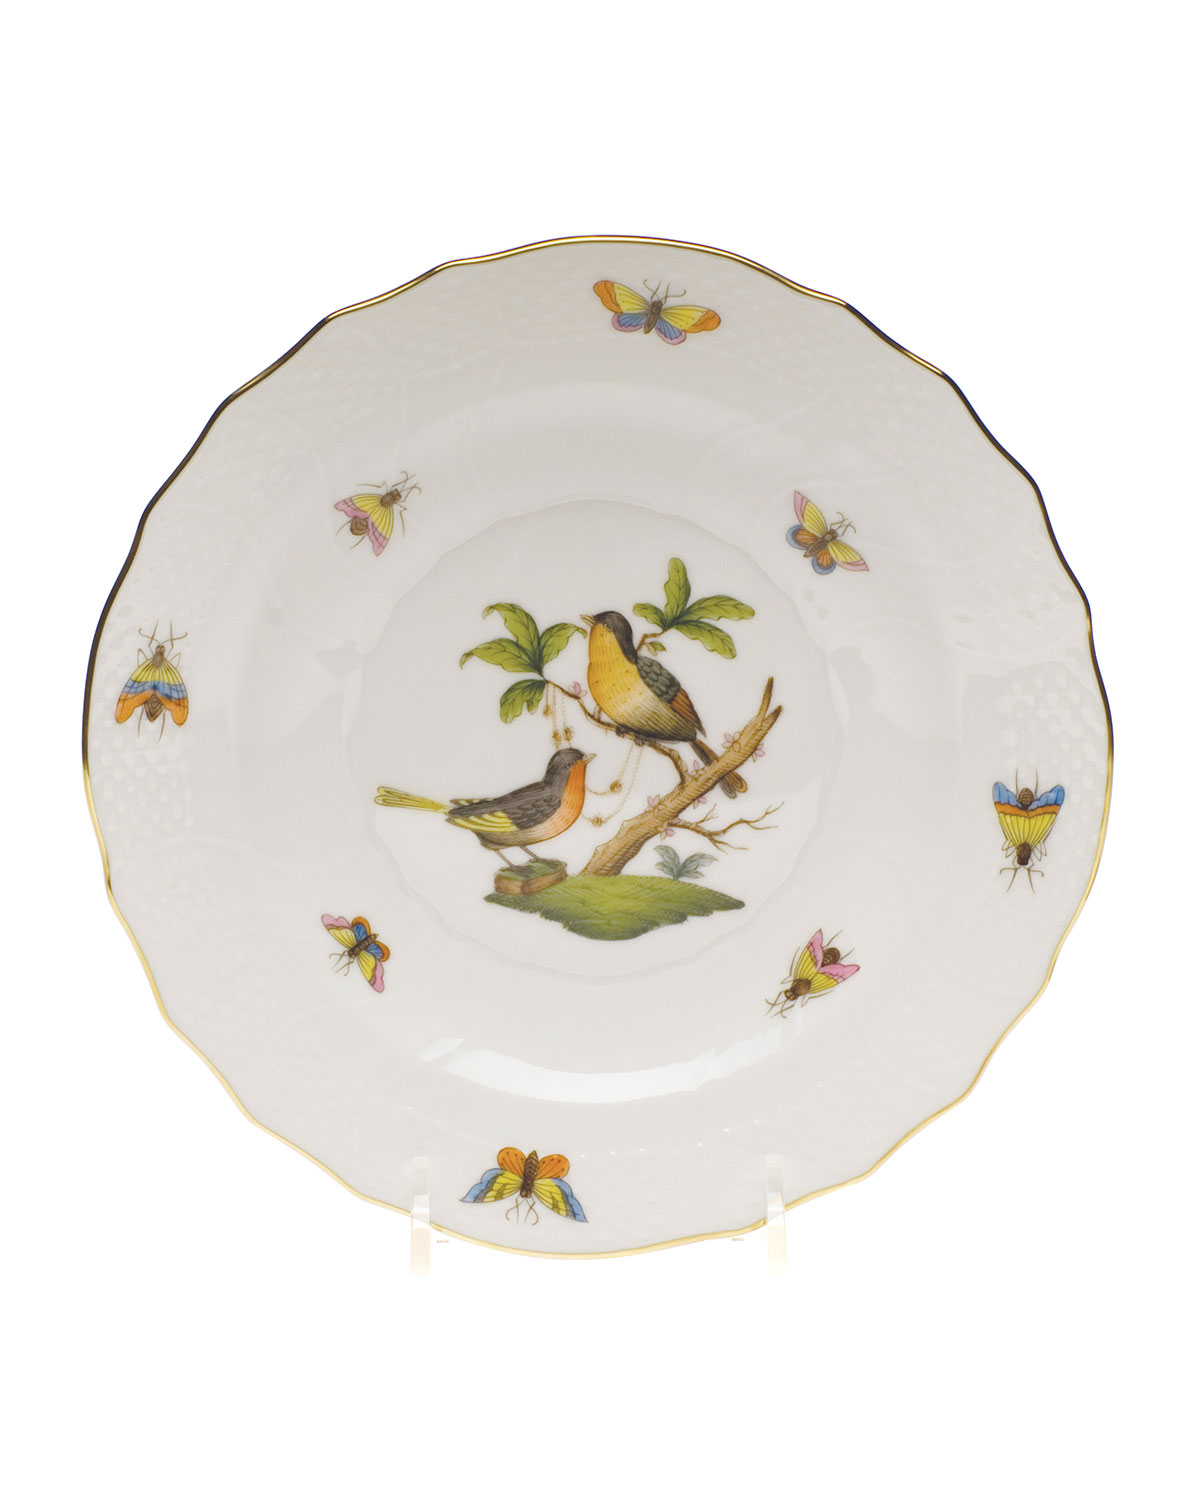 Herend ROTHSCHILD BIRD DESSERT PLATE #8